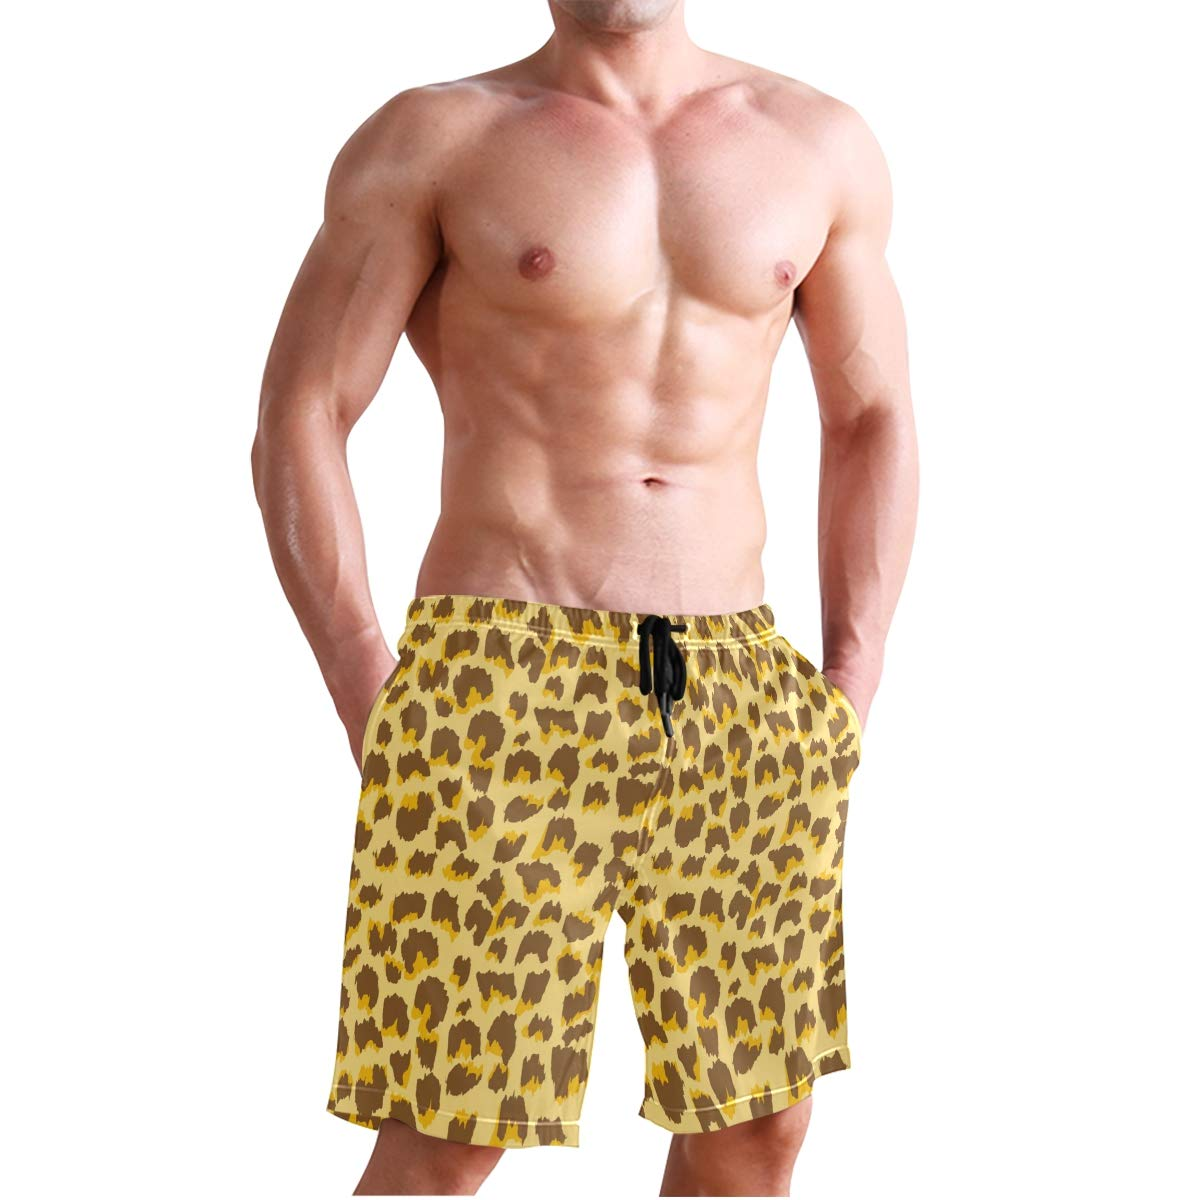 CENHOME Mens Swim Trunks Natural Color Leopard Pattern Beach Board Shorts